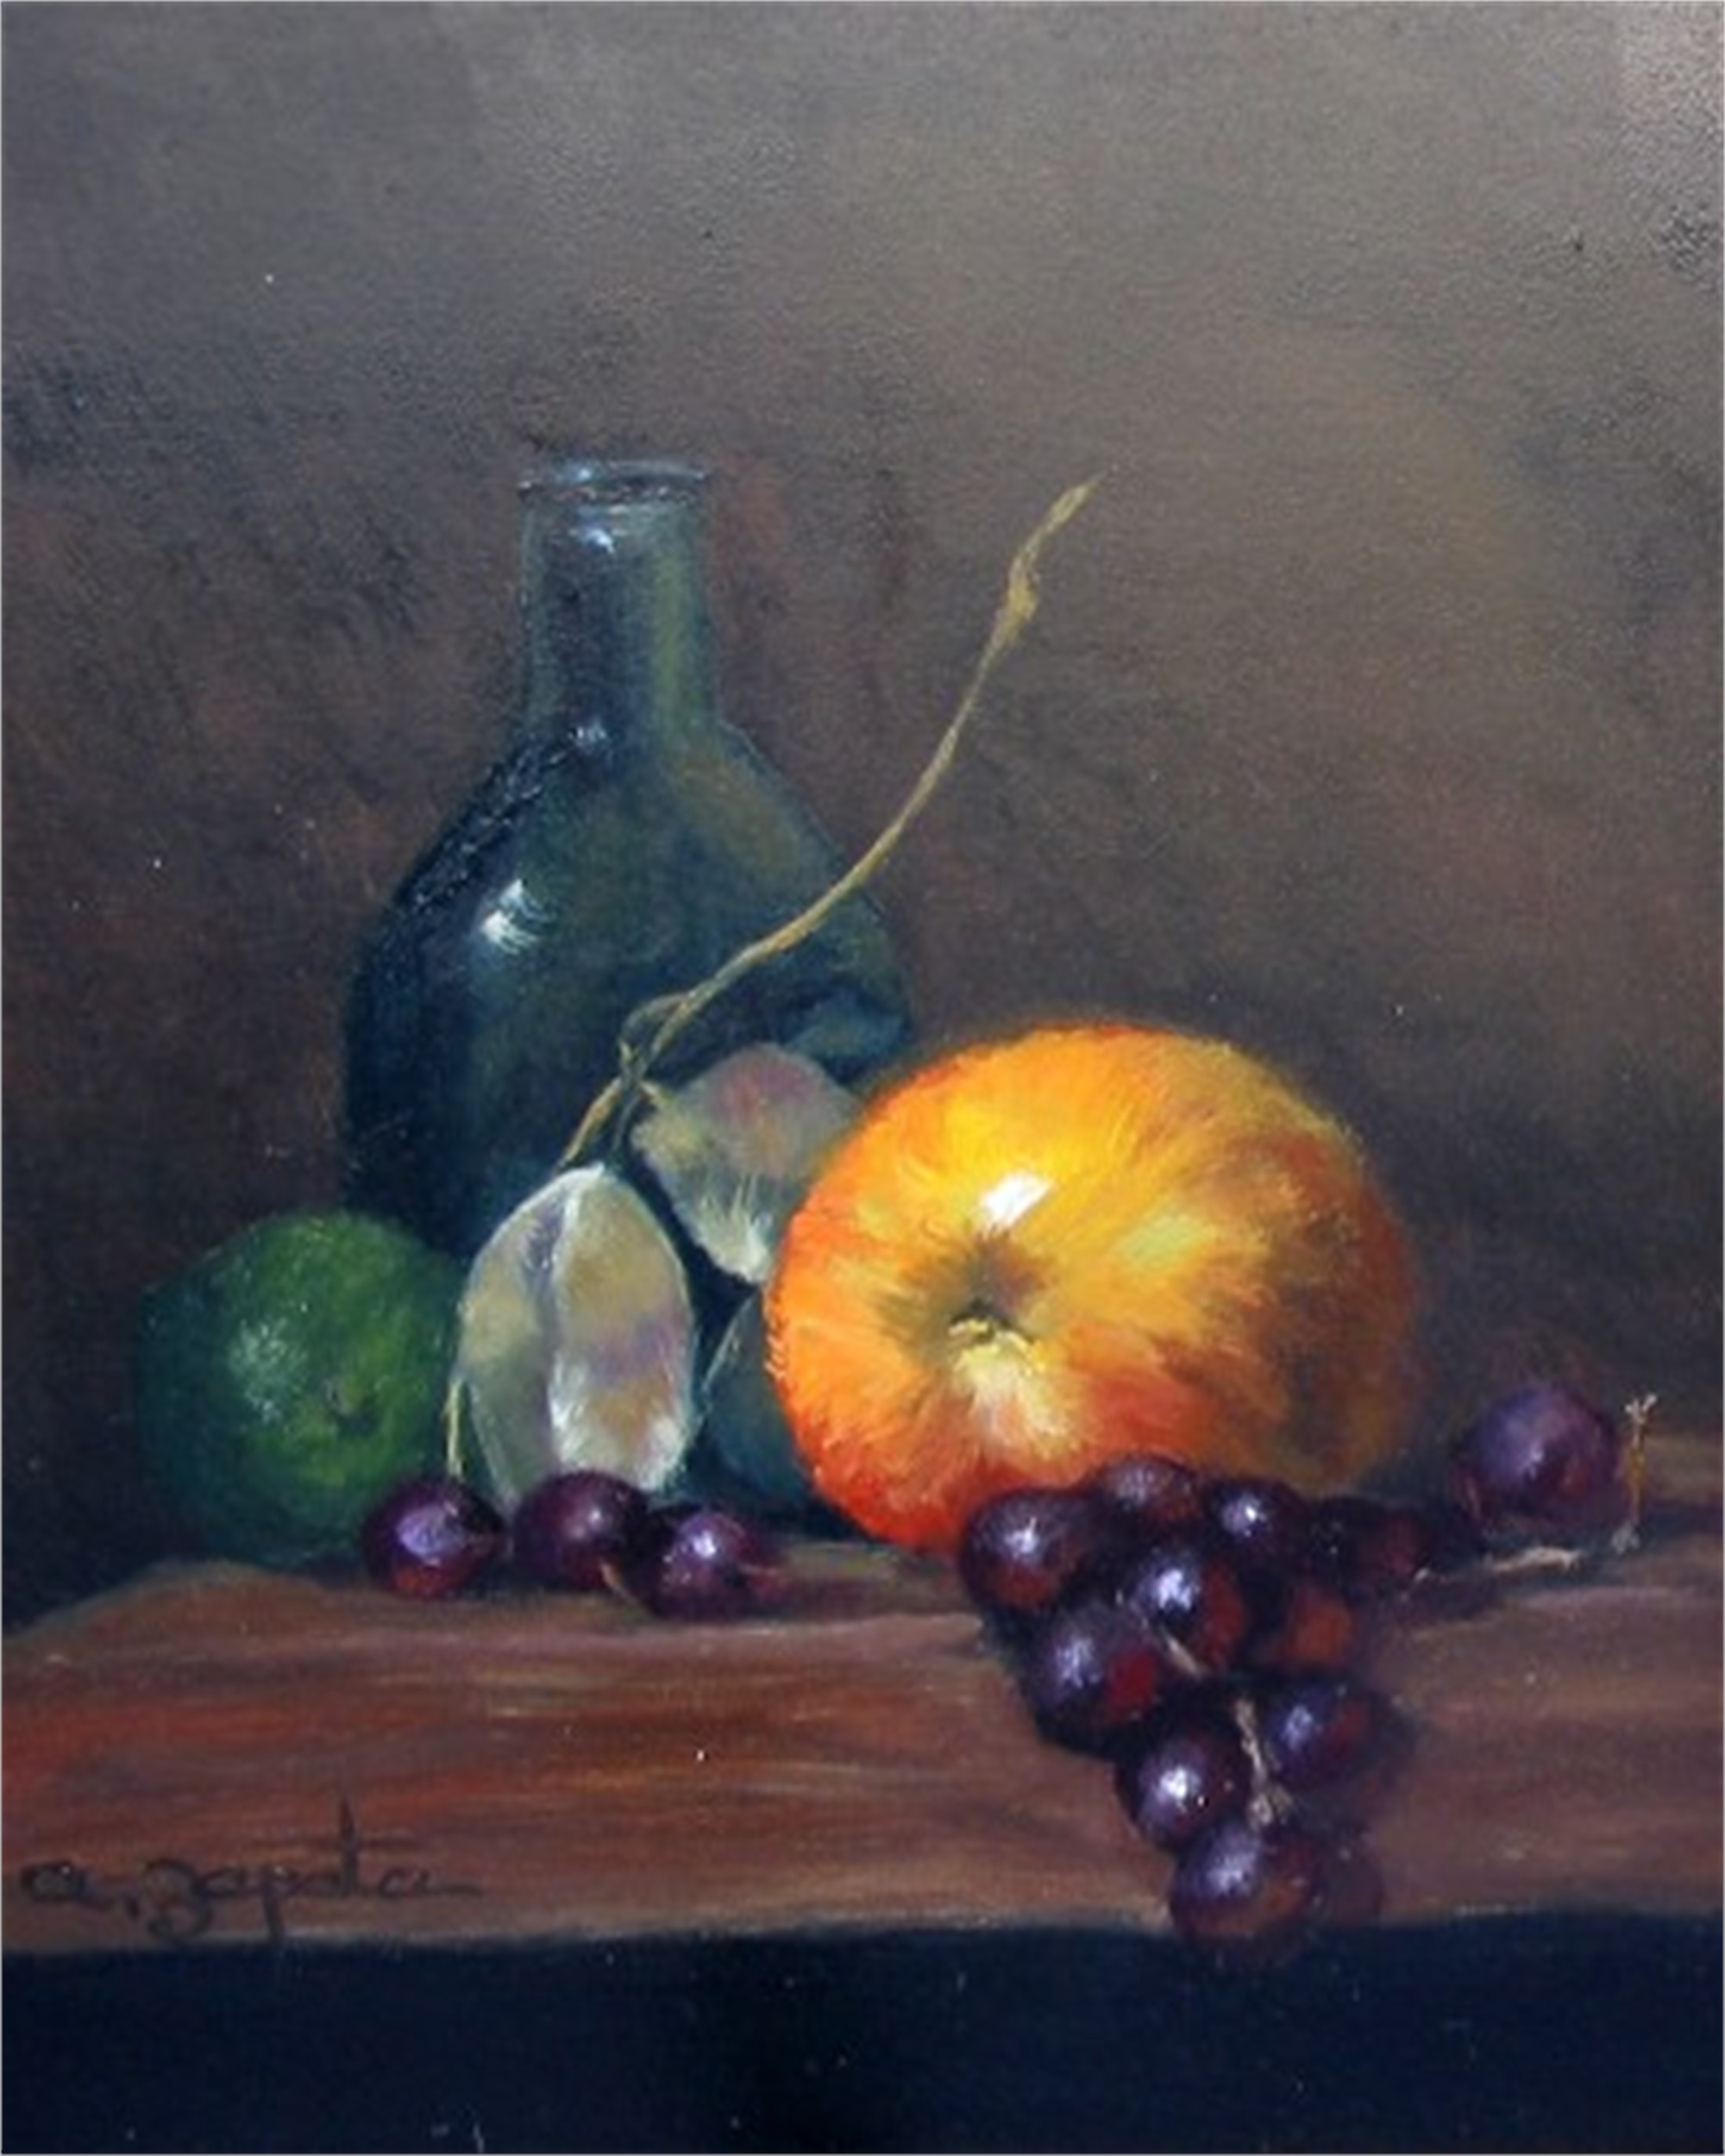 GRAPE AND APPLE by ZAPATA